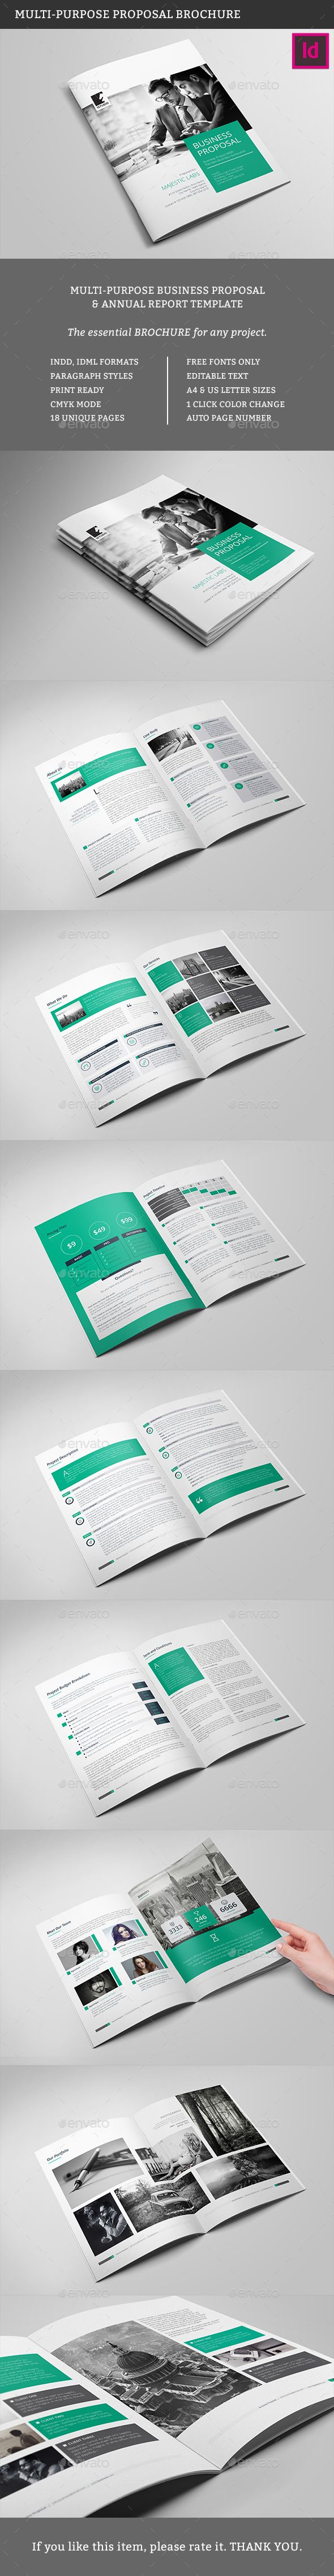 Multipurpose Business Proposal Template InDesign INDD #design Download: http://graphicriver.net/item/multipurpose-business-proposal/13944136?ref=ksioks